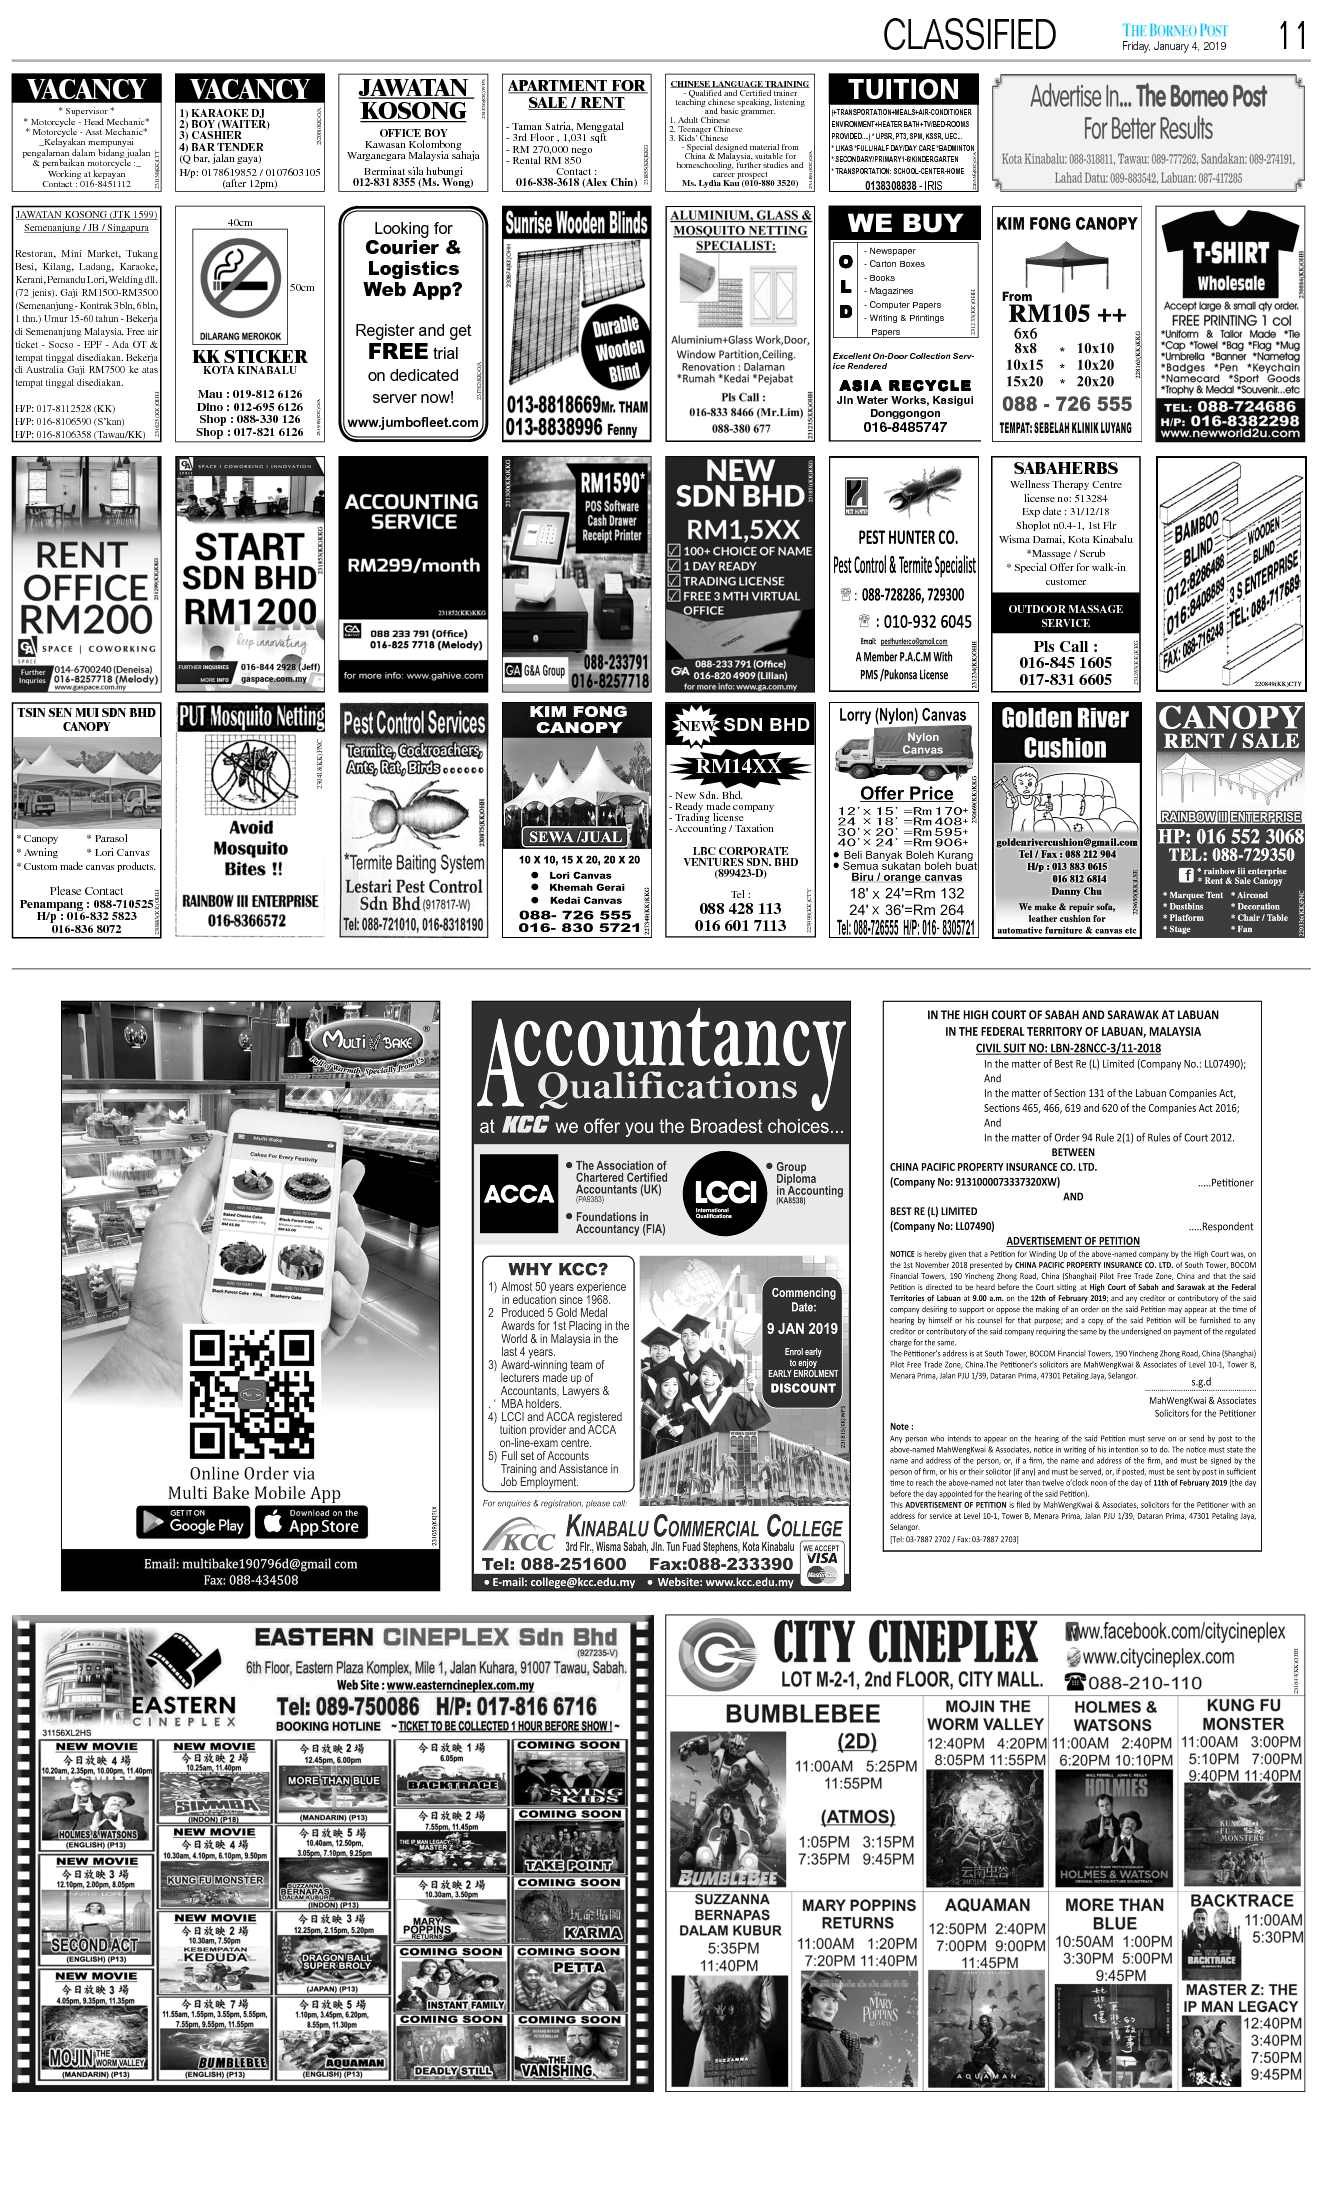 Friday - Jan 4 | The Borneo Post Classifieds